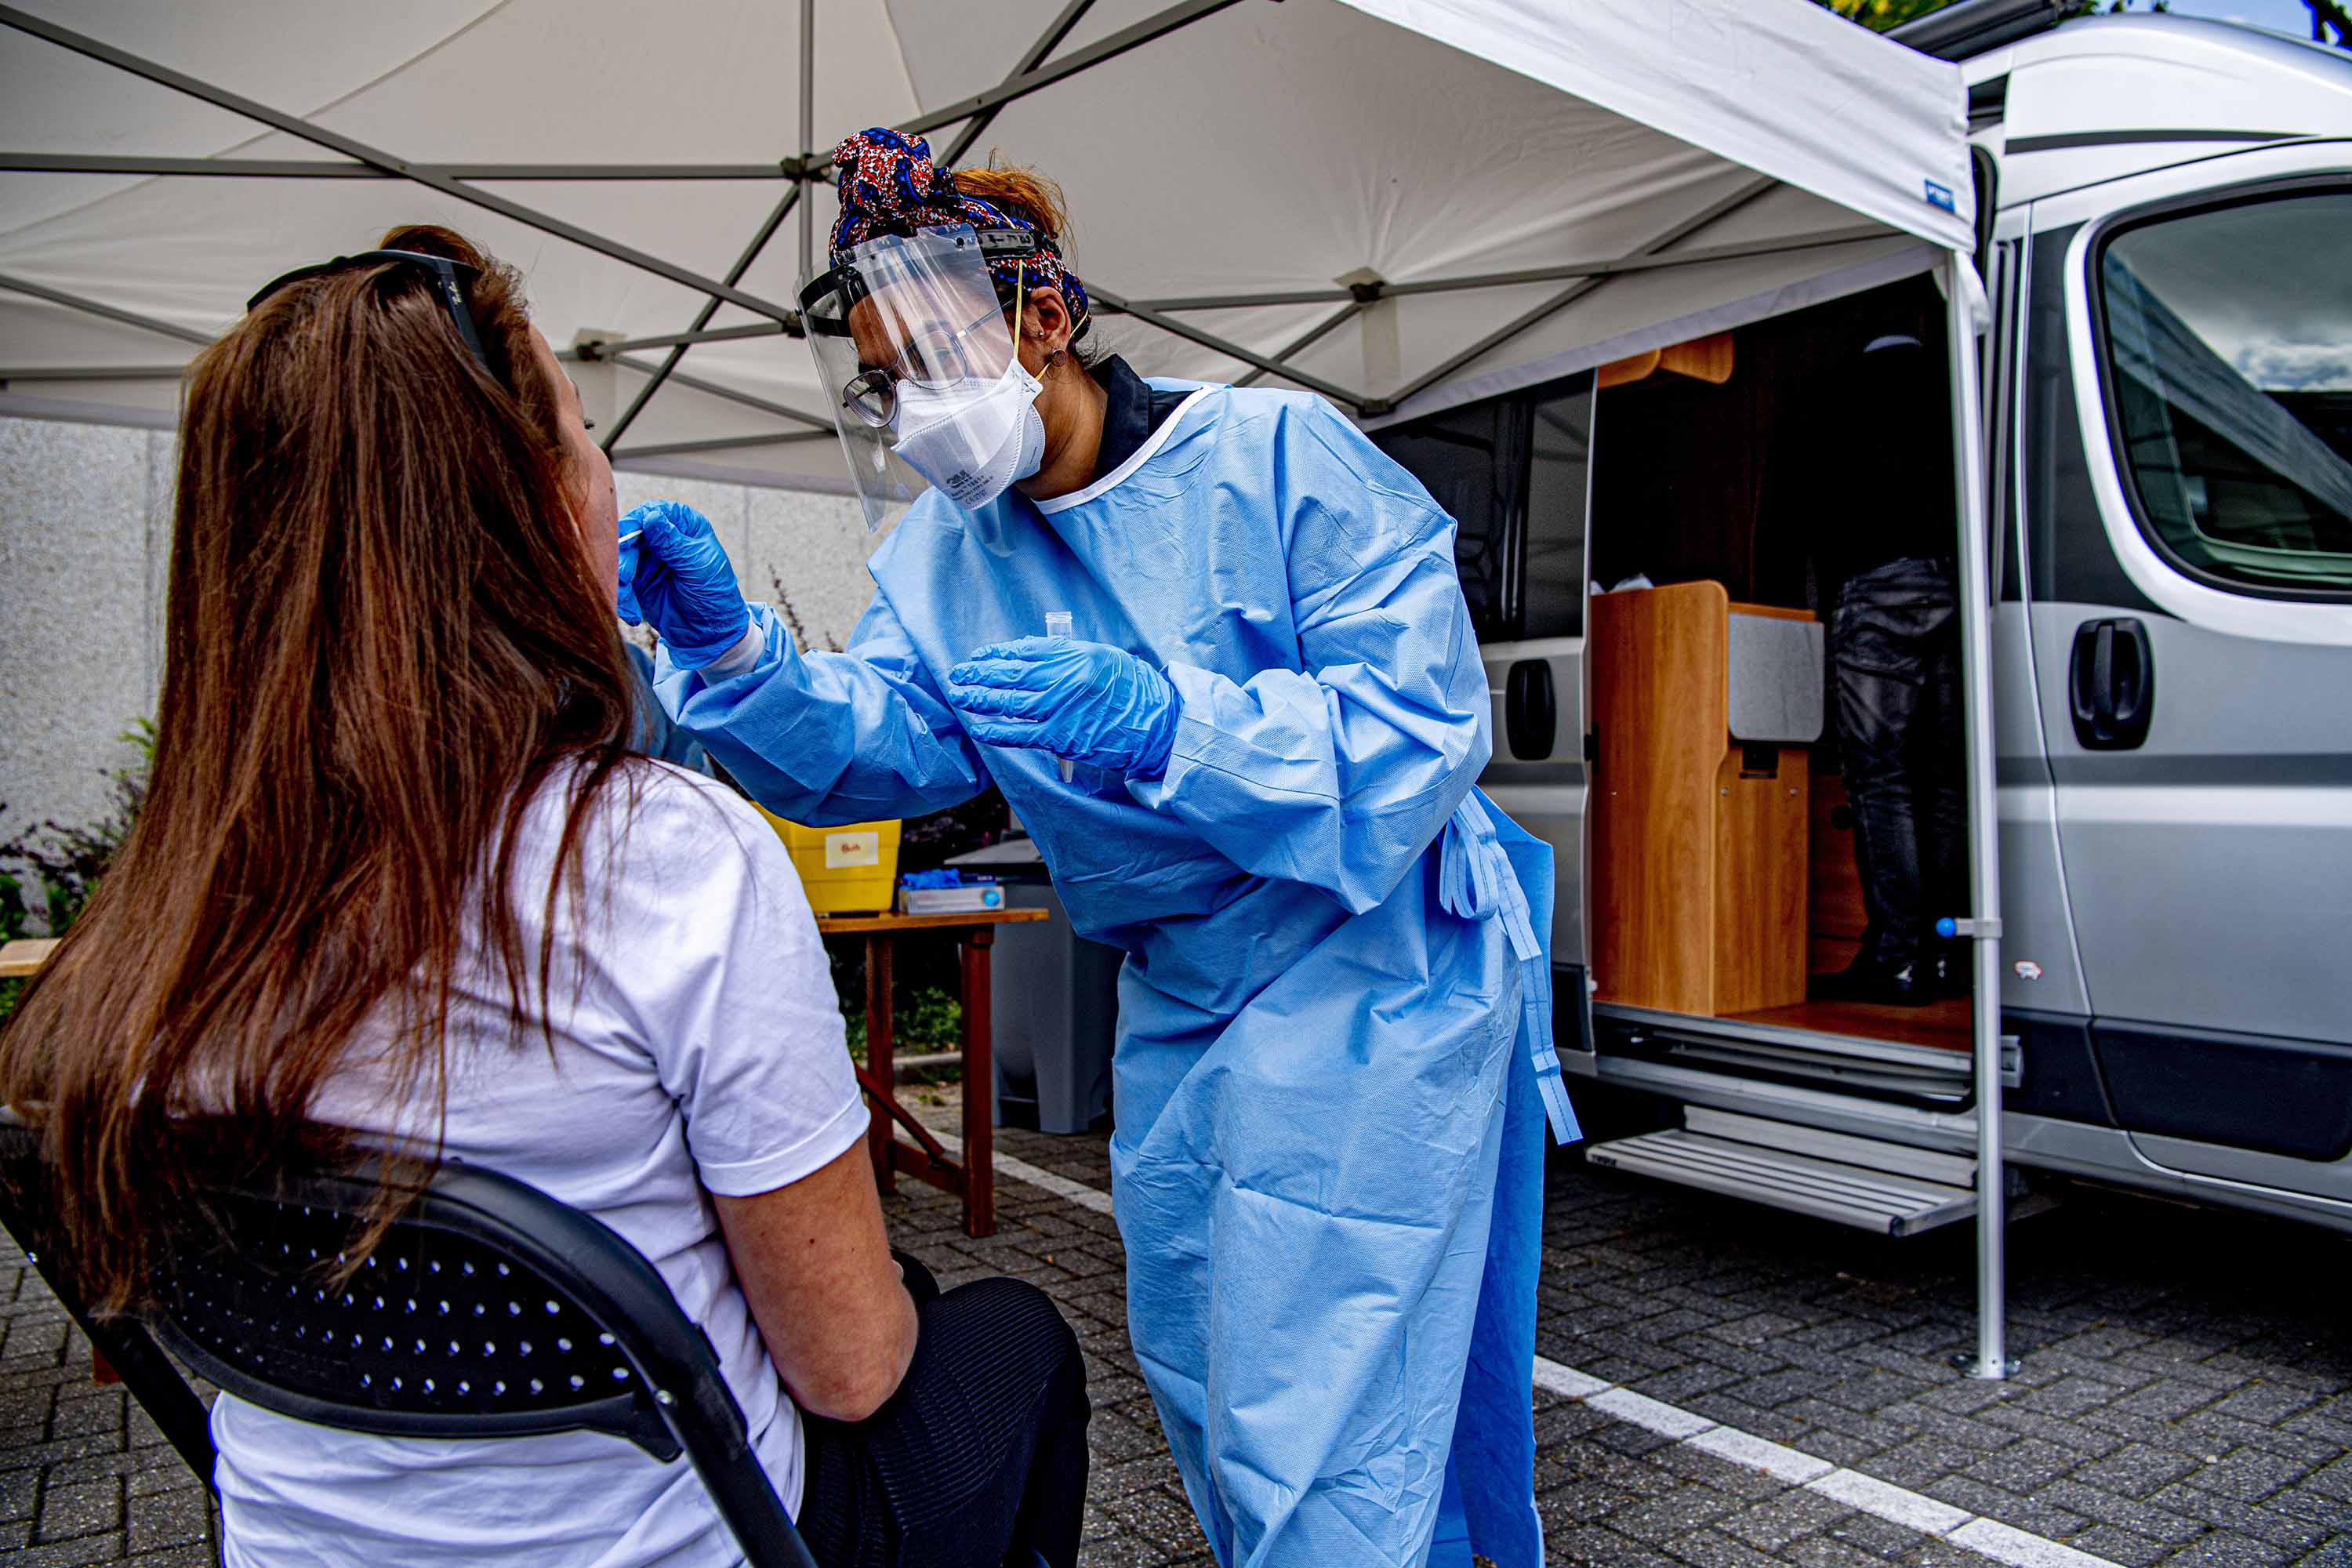 A health worker collects a sample during coronavirus screening in Maassluis, Netherlands on June 18.